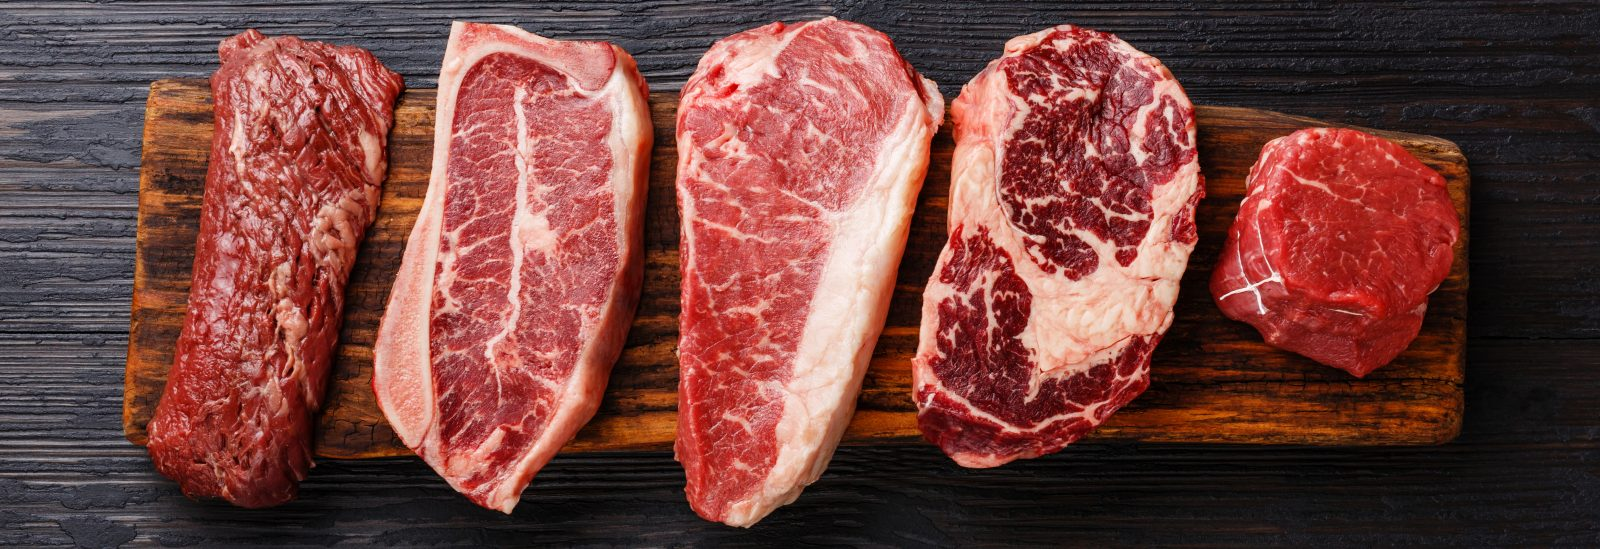 How Buying Good Quality Meat Benefits Your Health